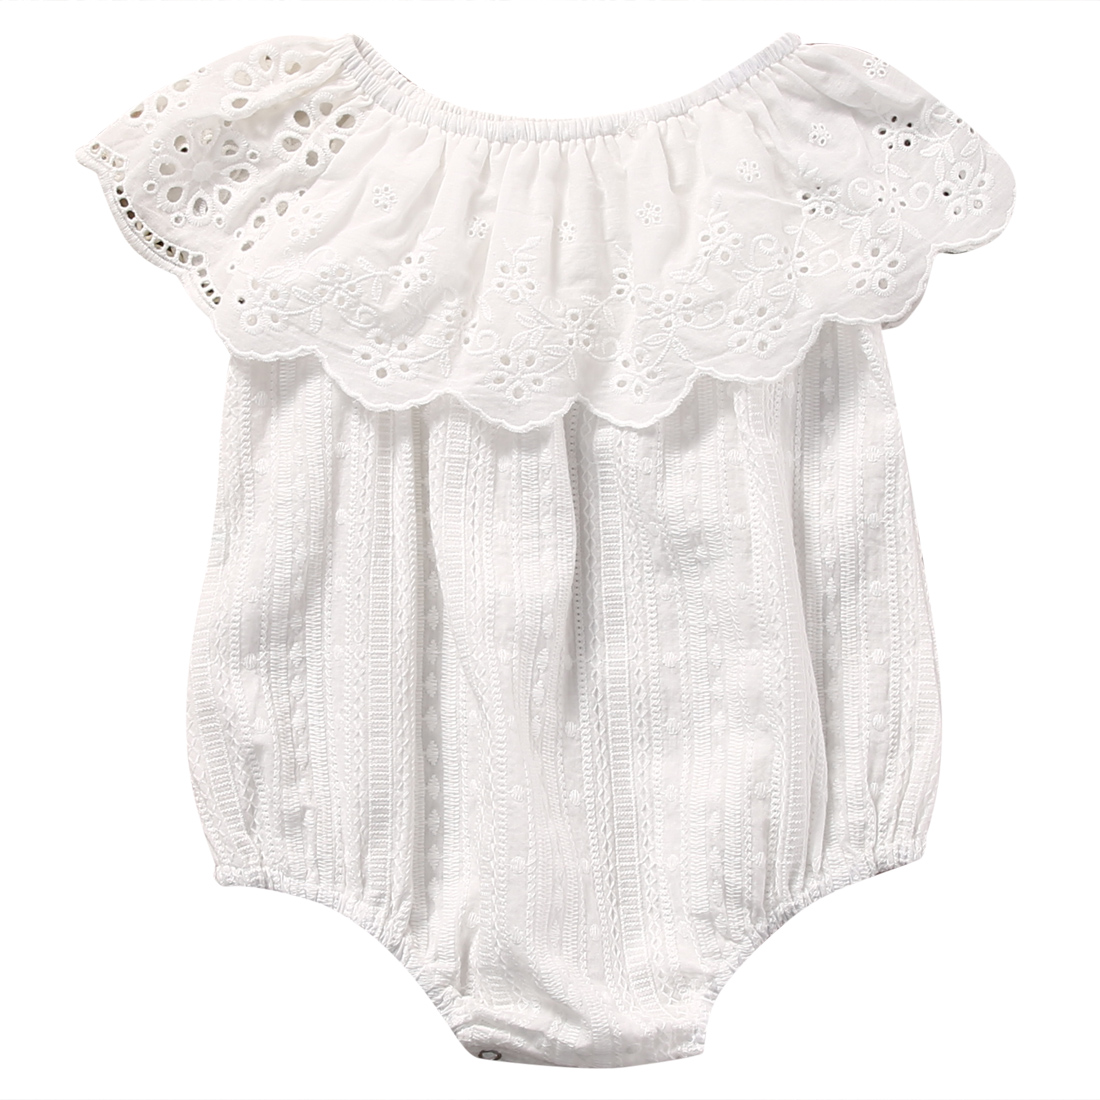 2017 New Cute Newborn Baby Girl Romper Clothes White Lace Playsuit Jumpsuit Outfit Summer Bebes Sunsuit 0-24M newborn infant baby girl clothes strap lace floral romper jumpsuit outfit summer cotton backless one pieces outfit baby onesie